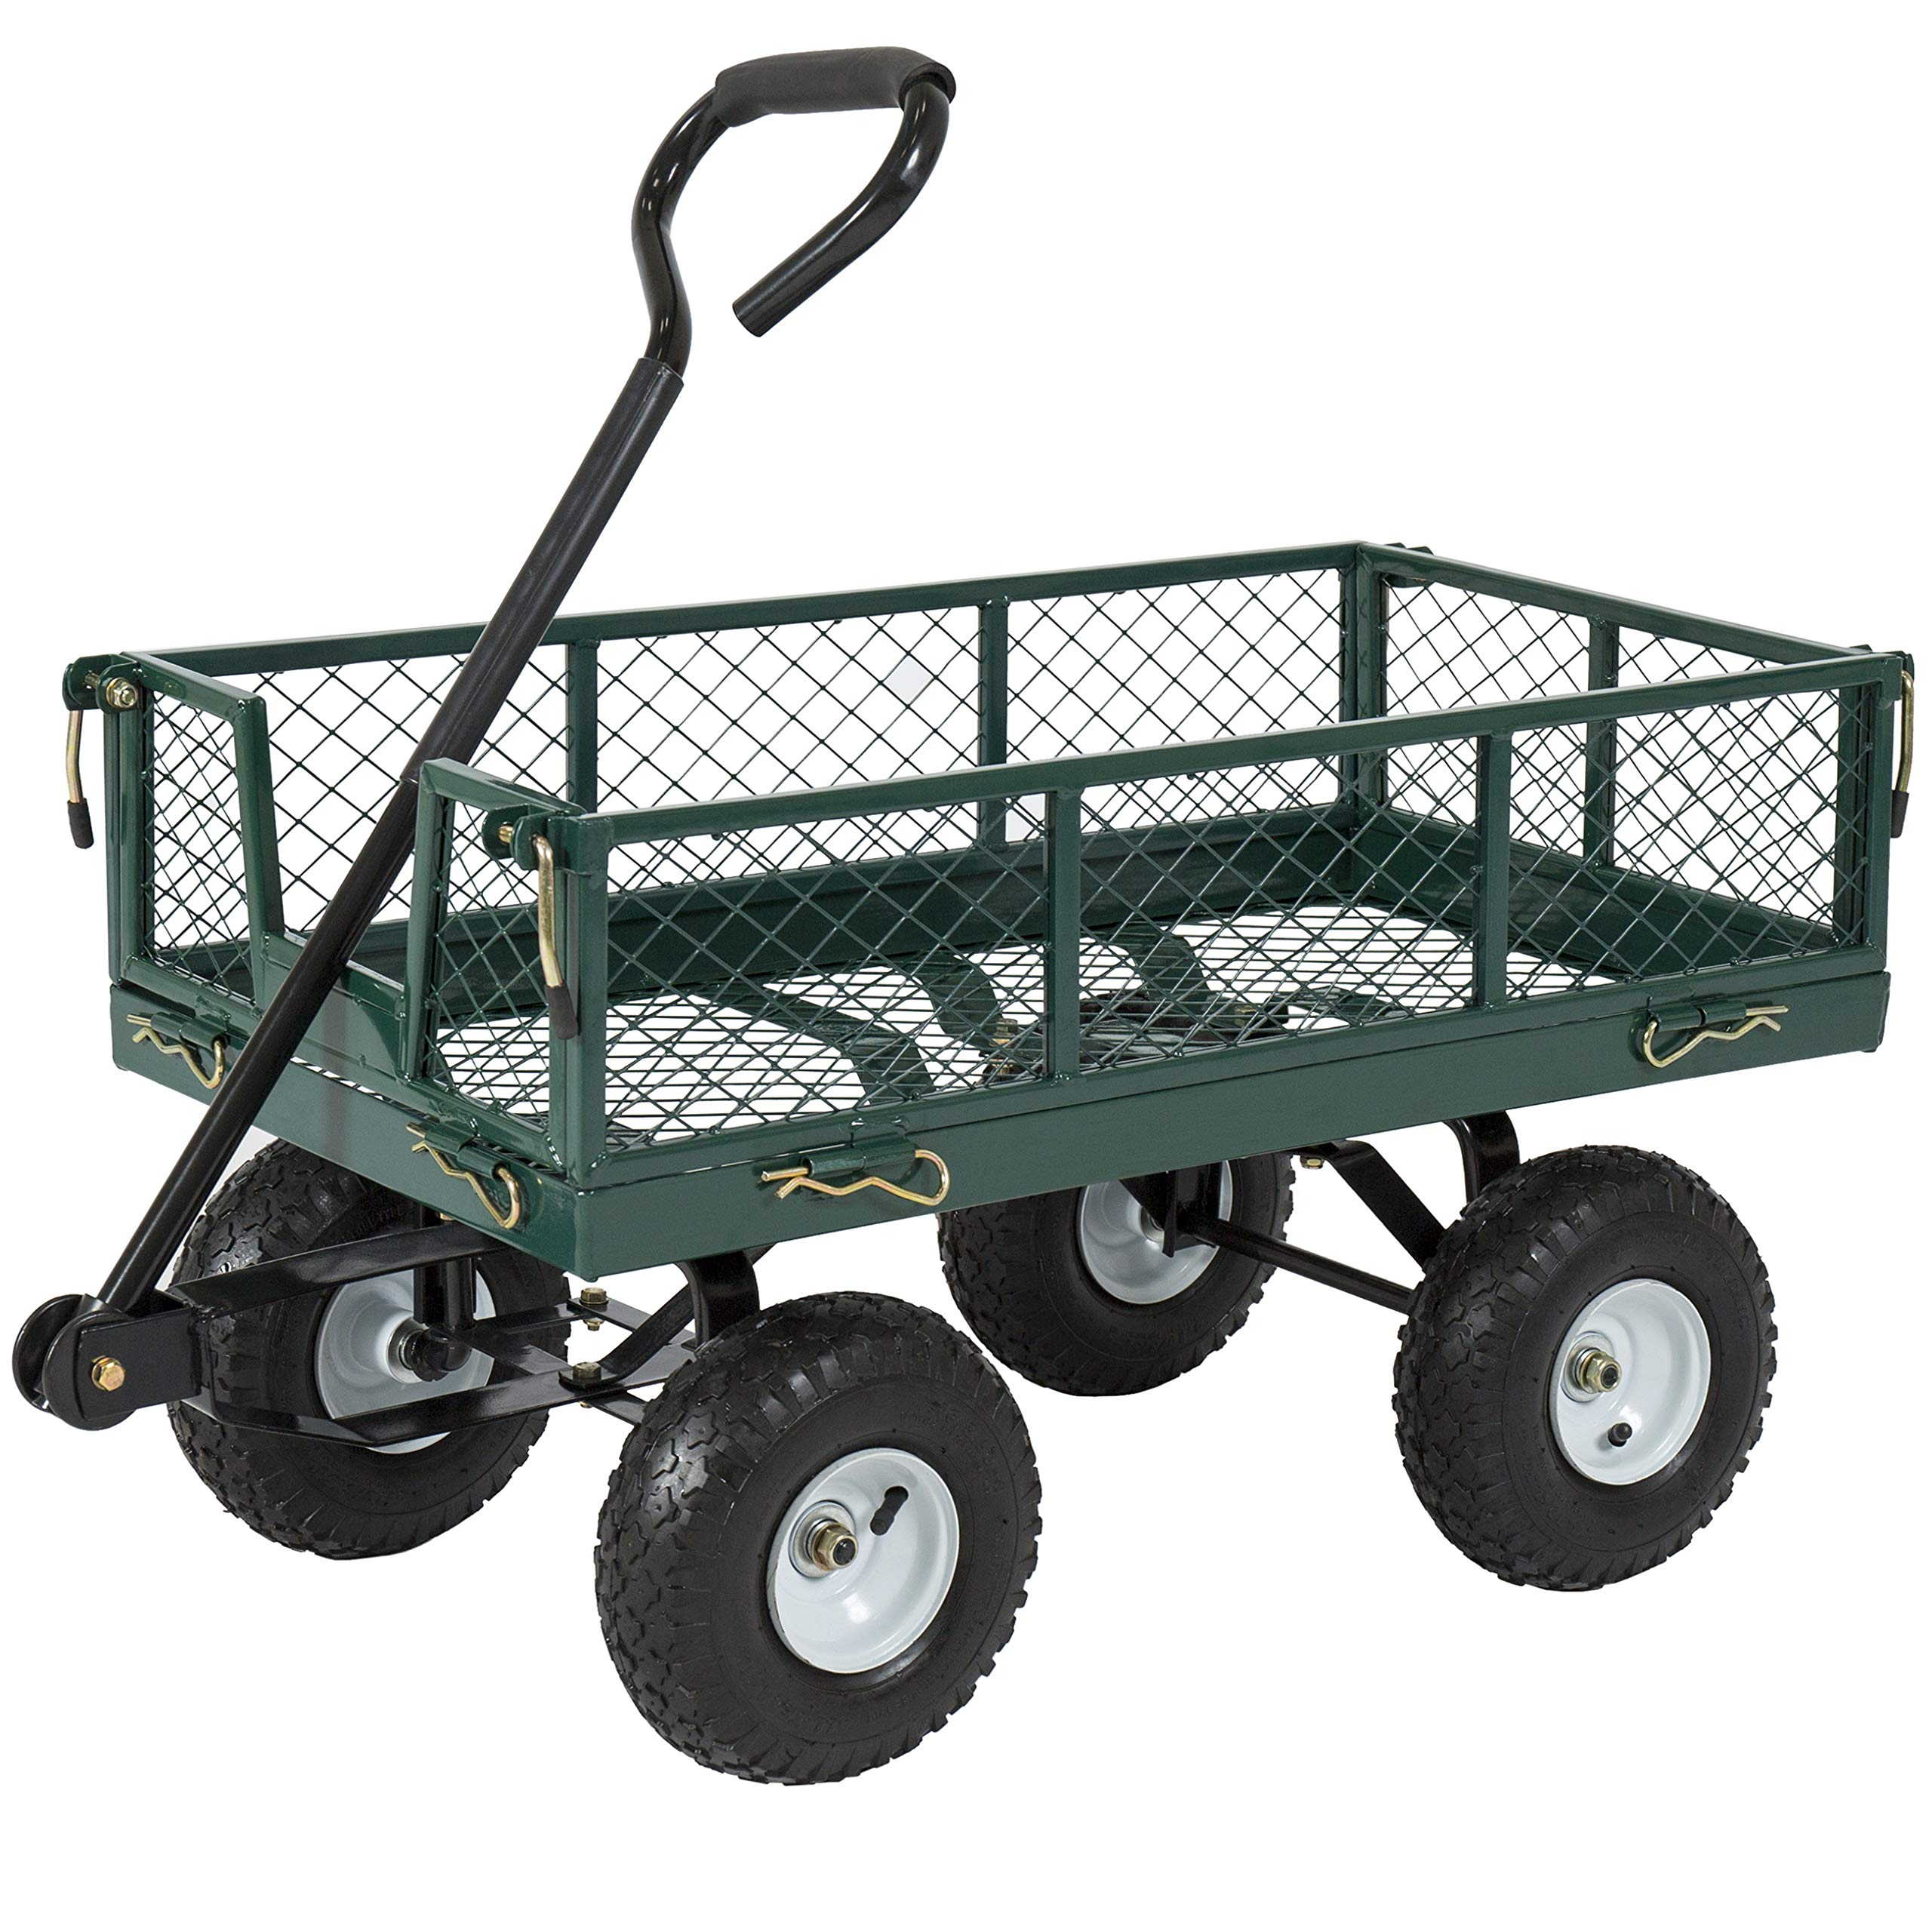 Best Choice Products Heavy-Duty Steel Garden Wagon Lawn Utility Cart w/ 400lb Capacity, Removable Sides, Long Handle, 10-Inch Tires by Best Choice Products